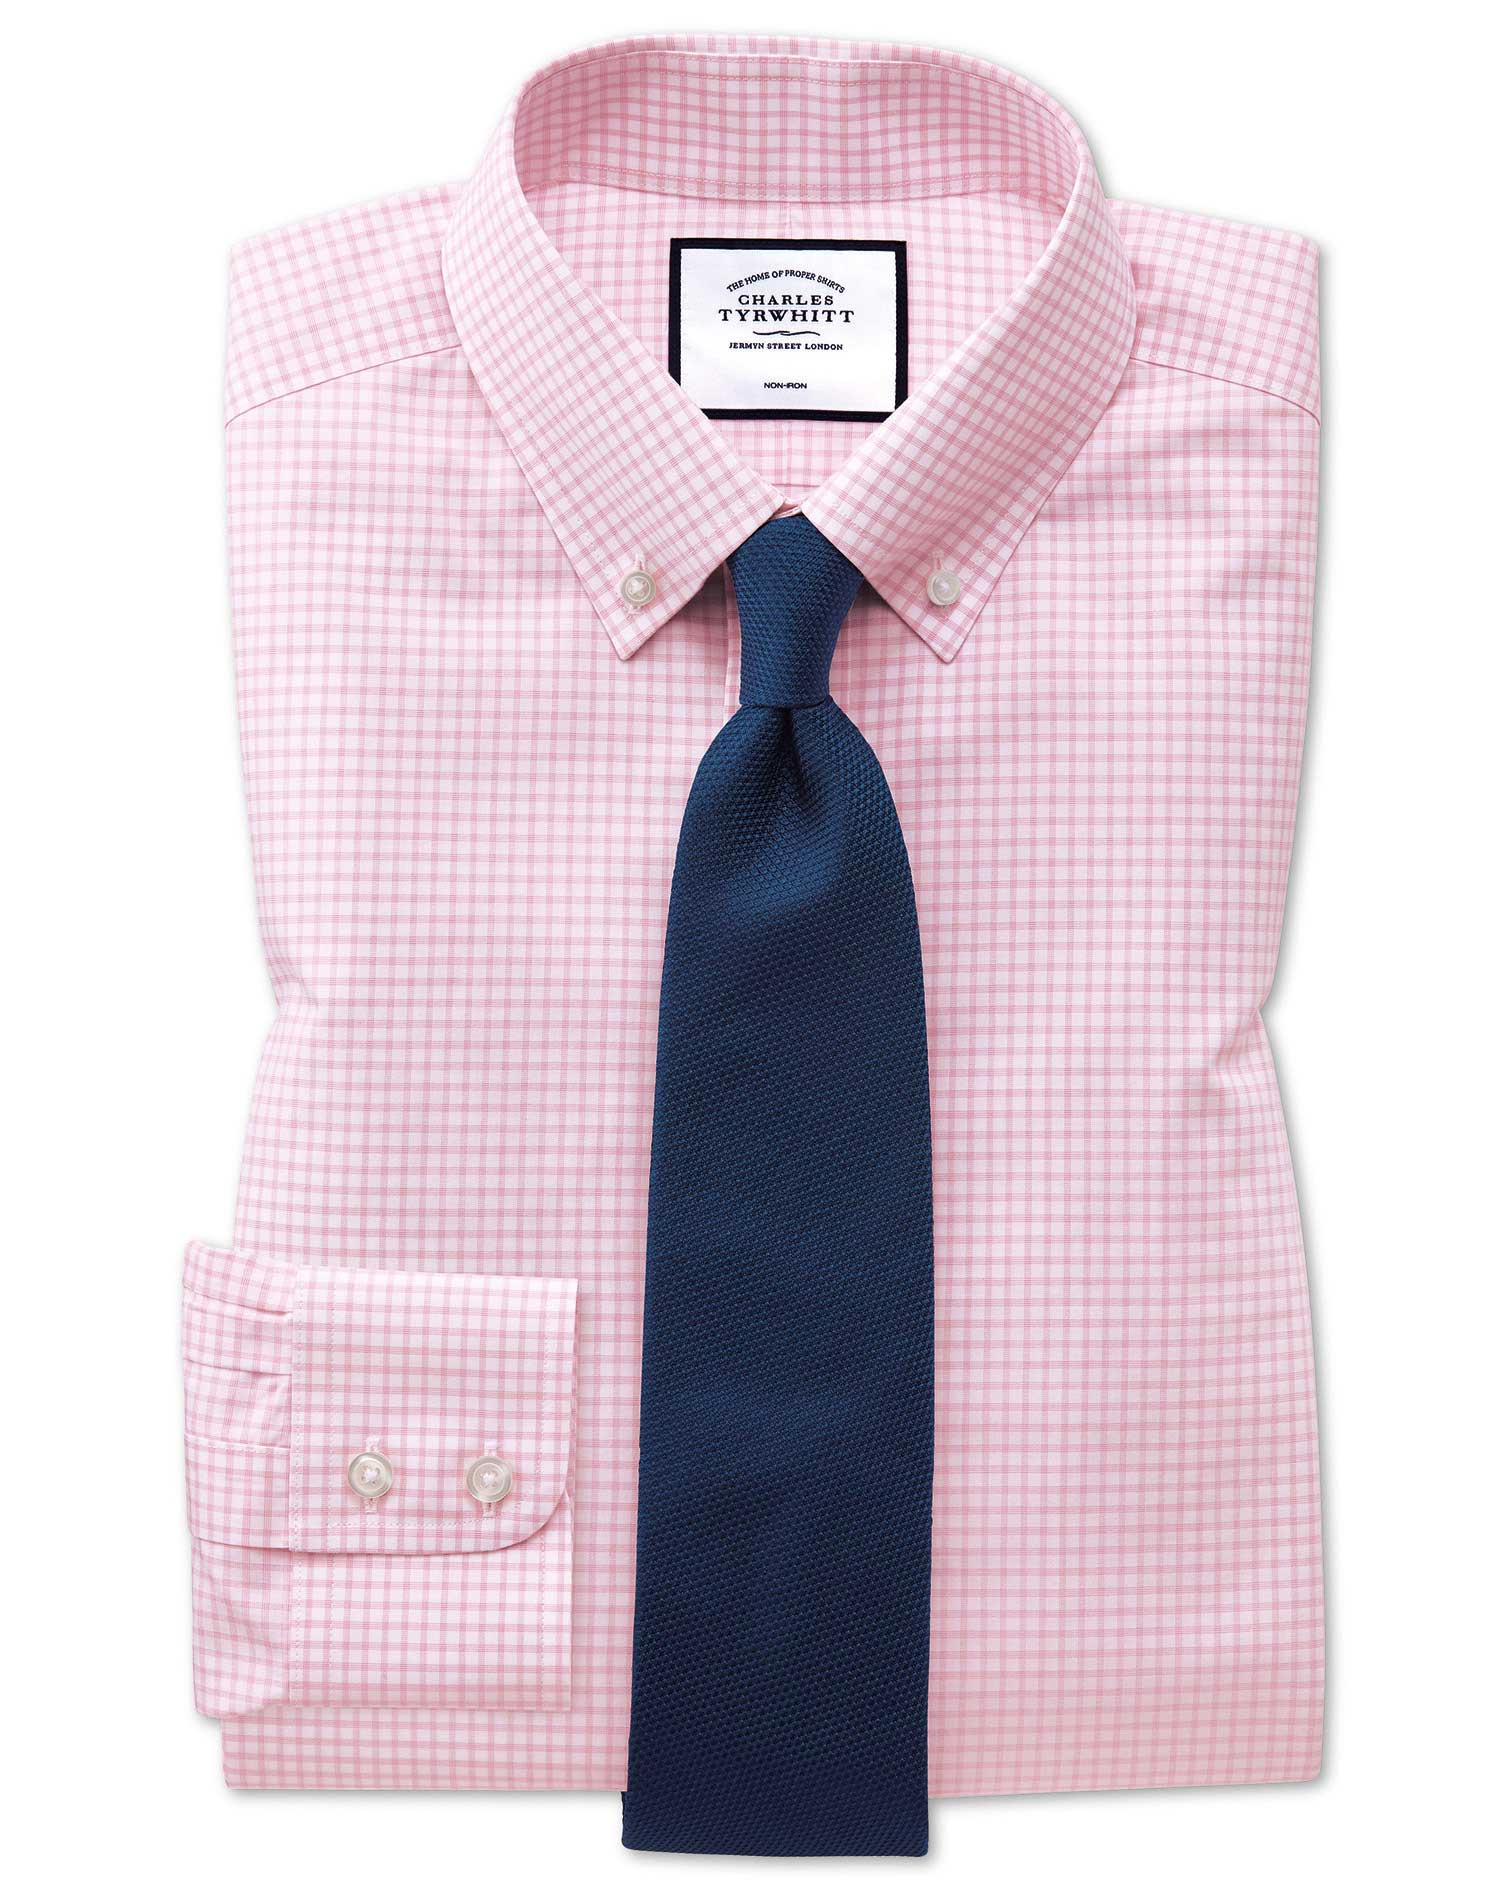 Classic Fit Non-Iron Pink Windowpane Check Cotton Formal Shirt Single Cuff Size 18/37 by Charles Tyr